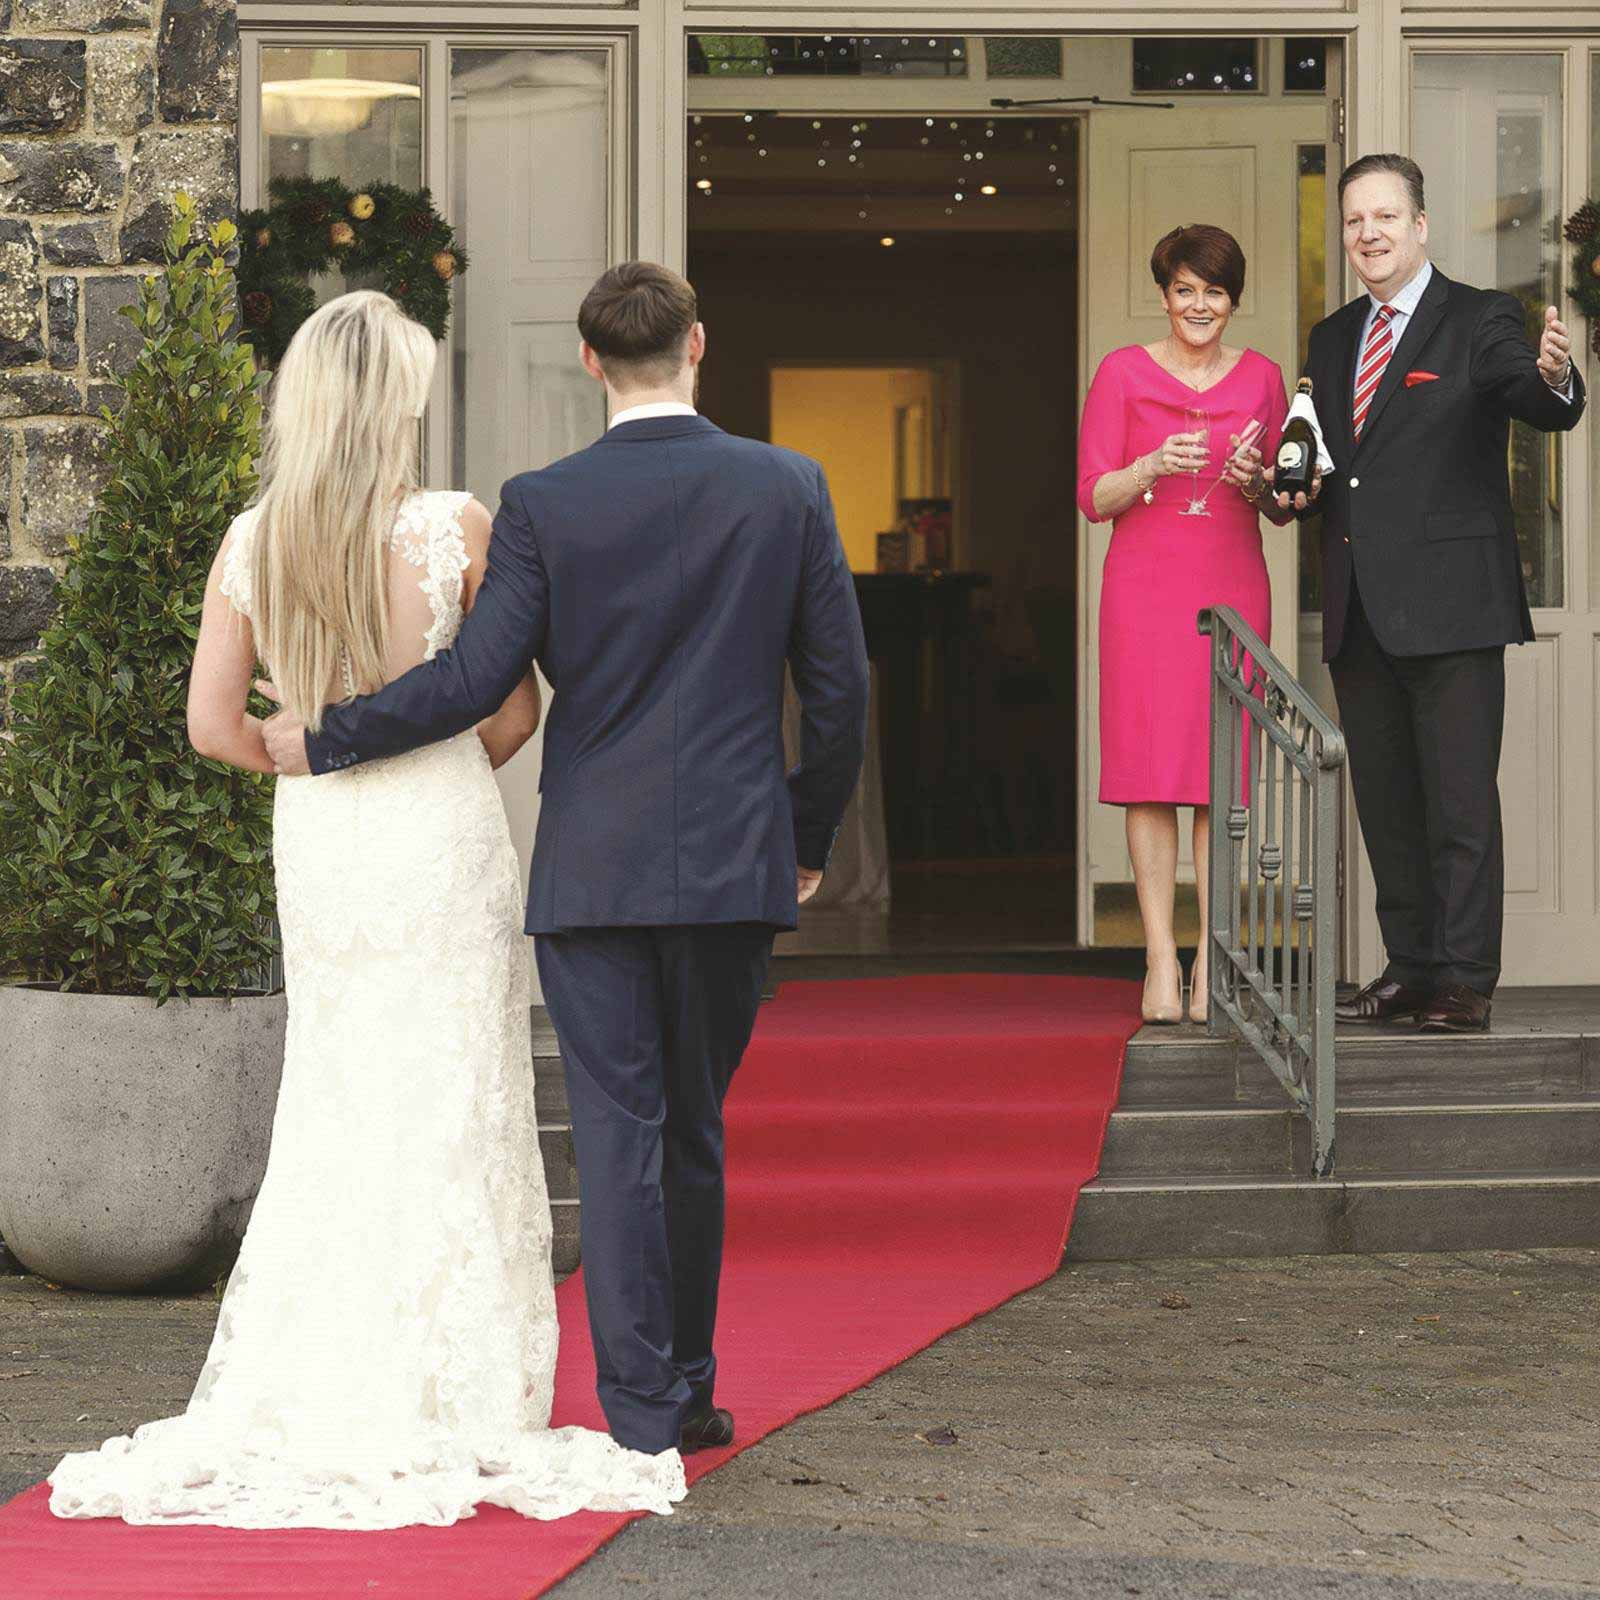 Weddings at Hotel Woodstock - A Waiting Welcome